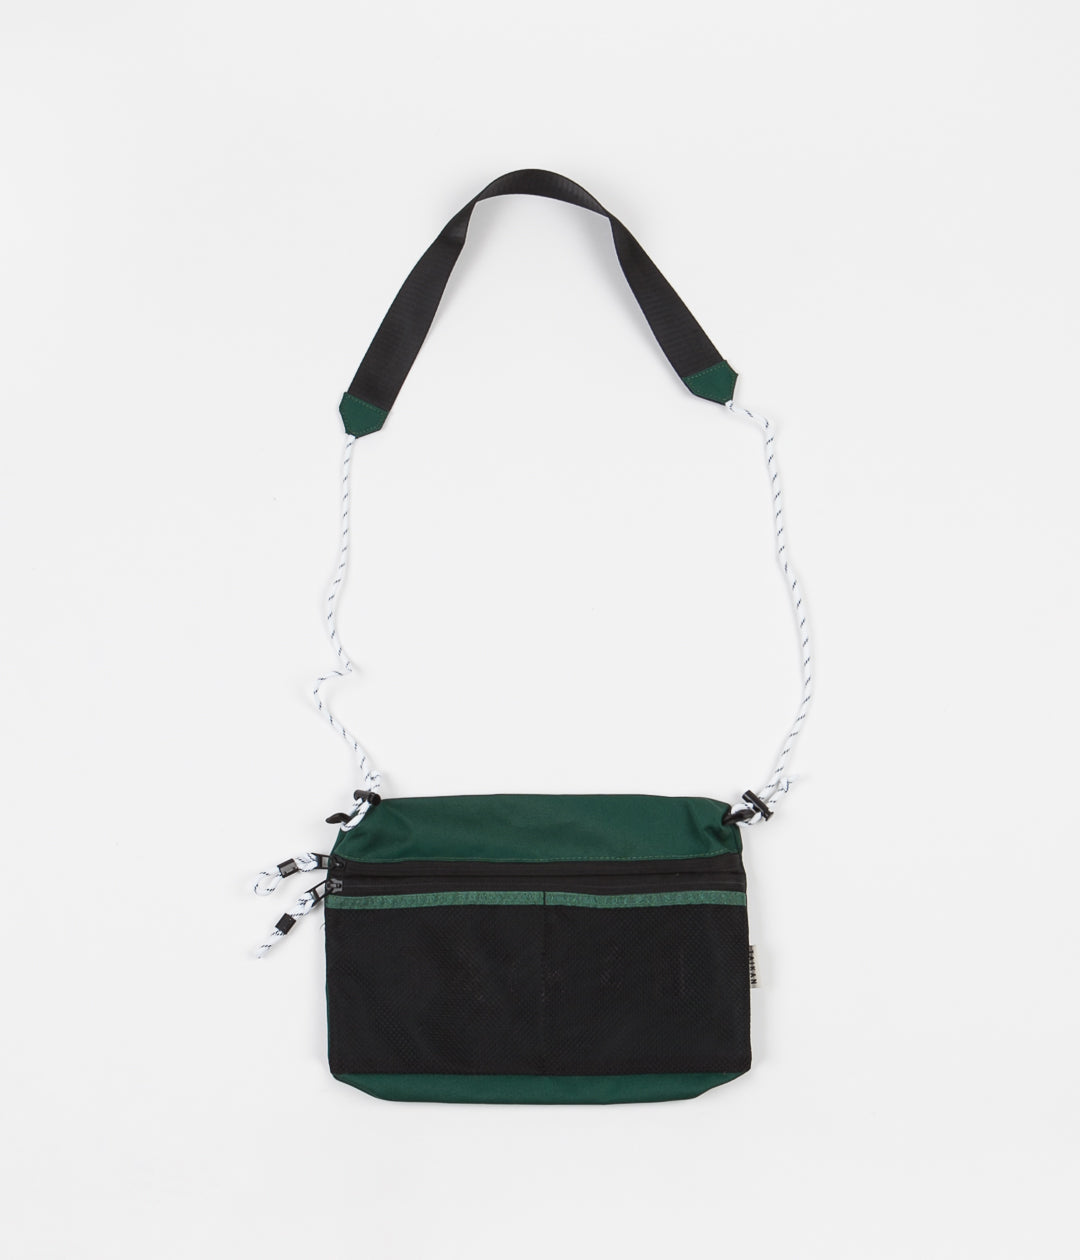 Taikan Everything Sacoche Bag - Green - Large